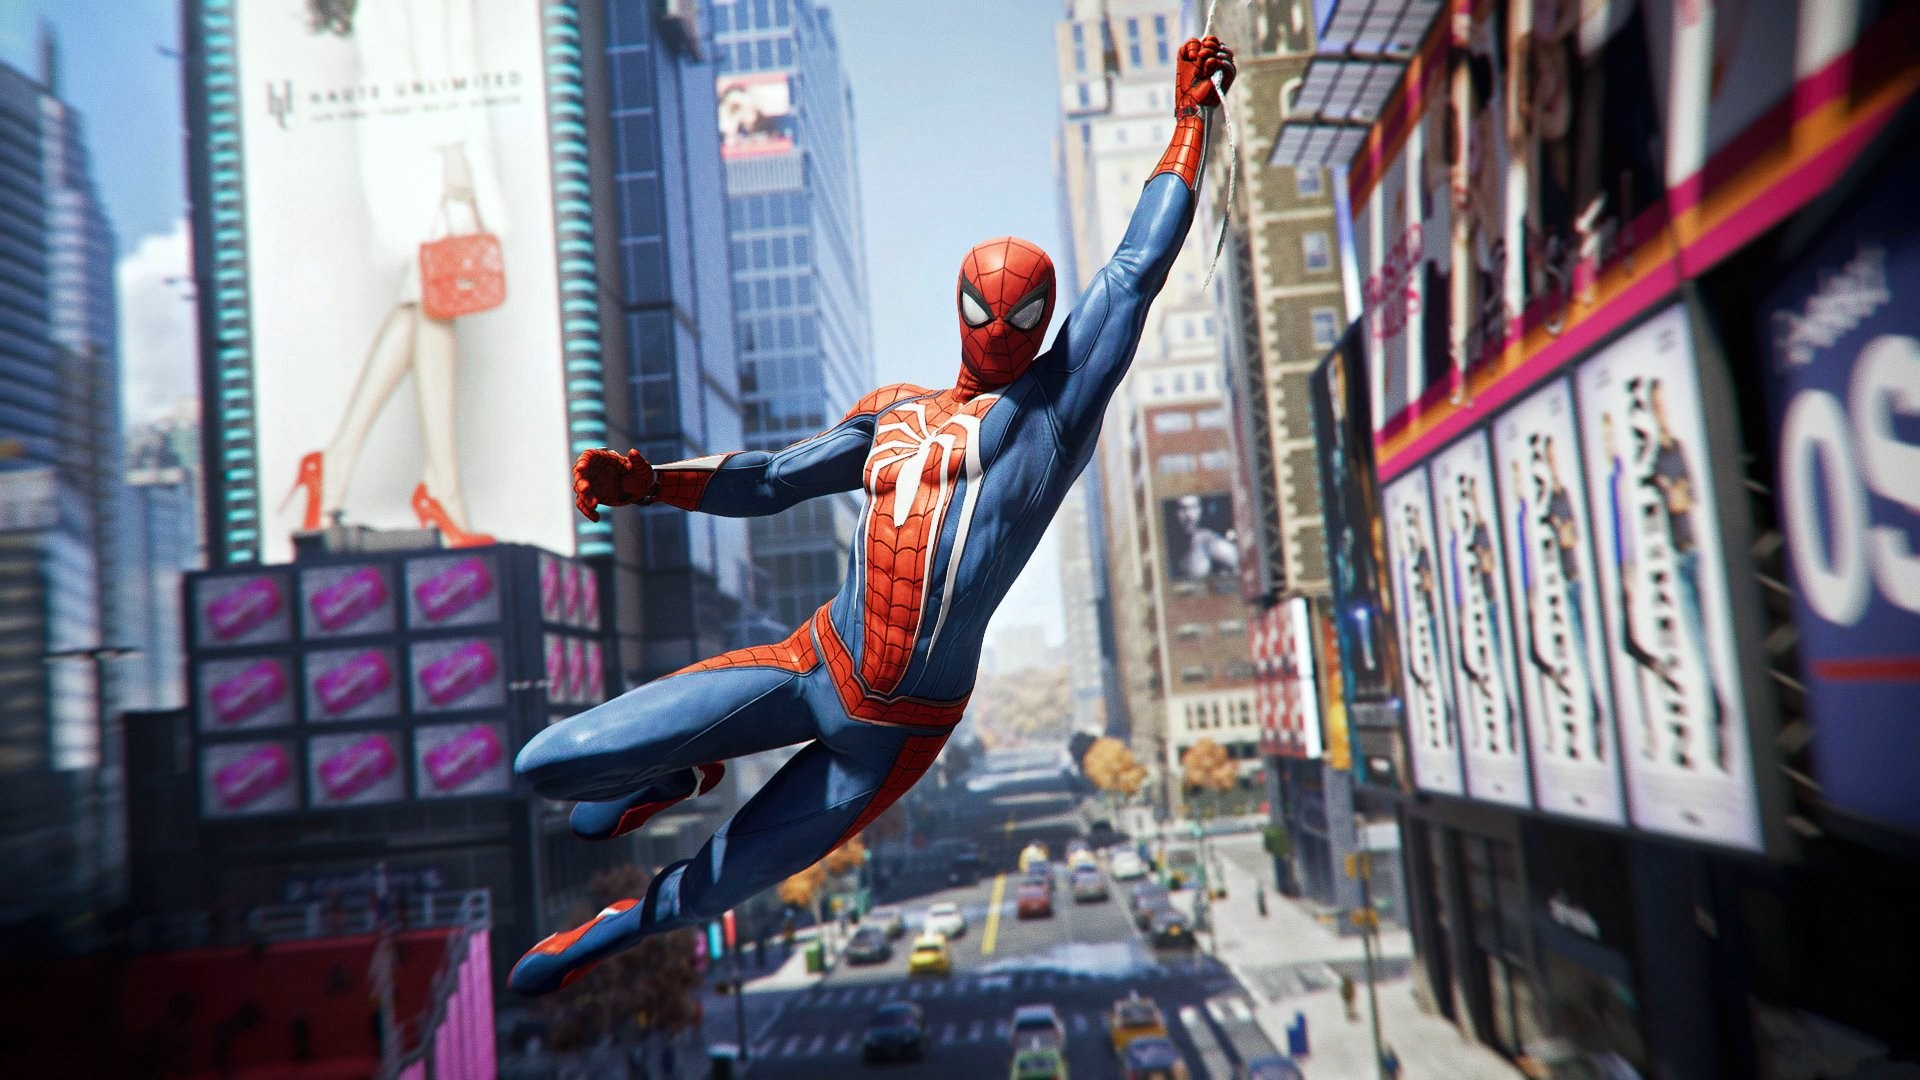 10+ Marvel's Spider-Man HD Wallpapers High Quality